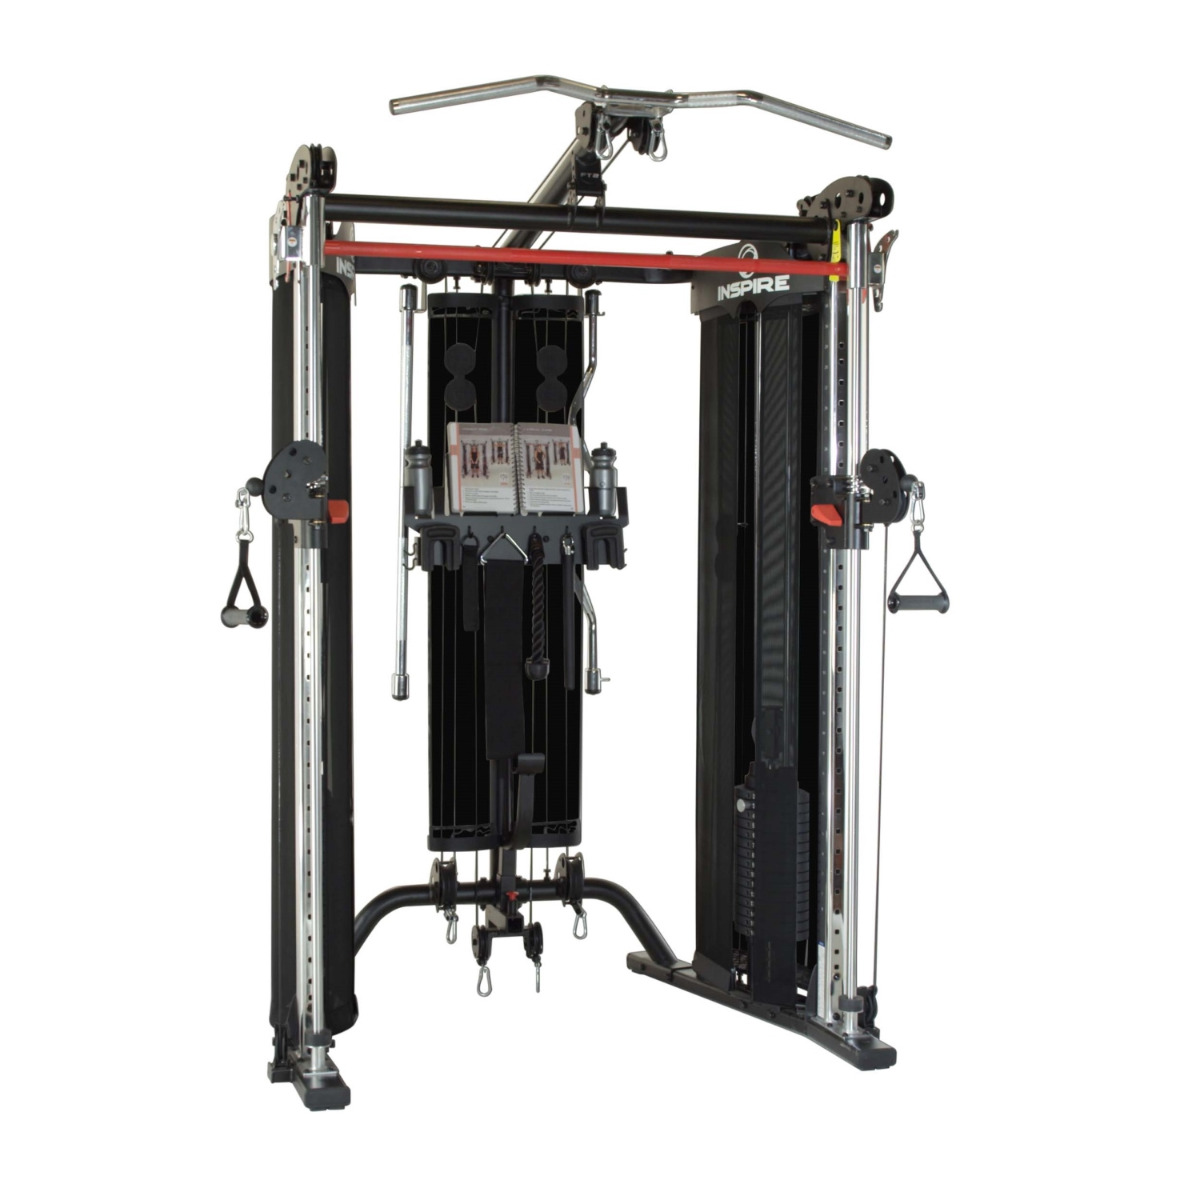 Inspire FT2 Functional Trainer & Smith System